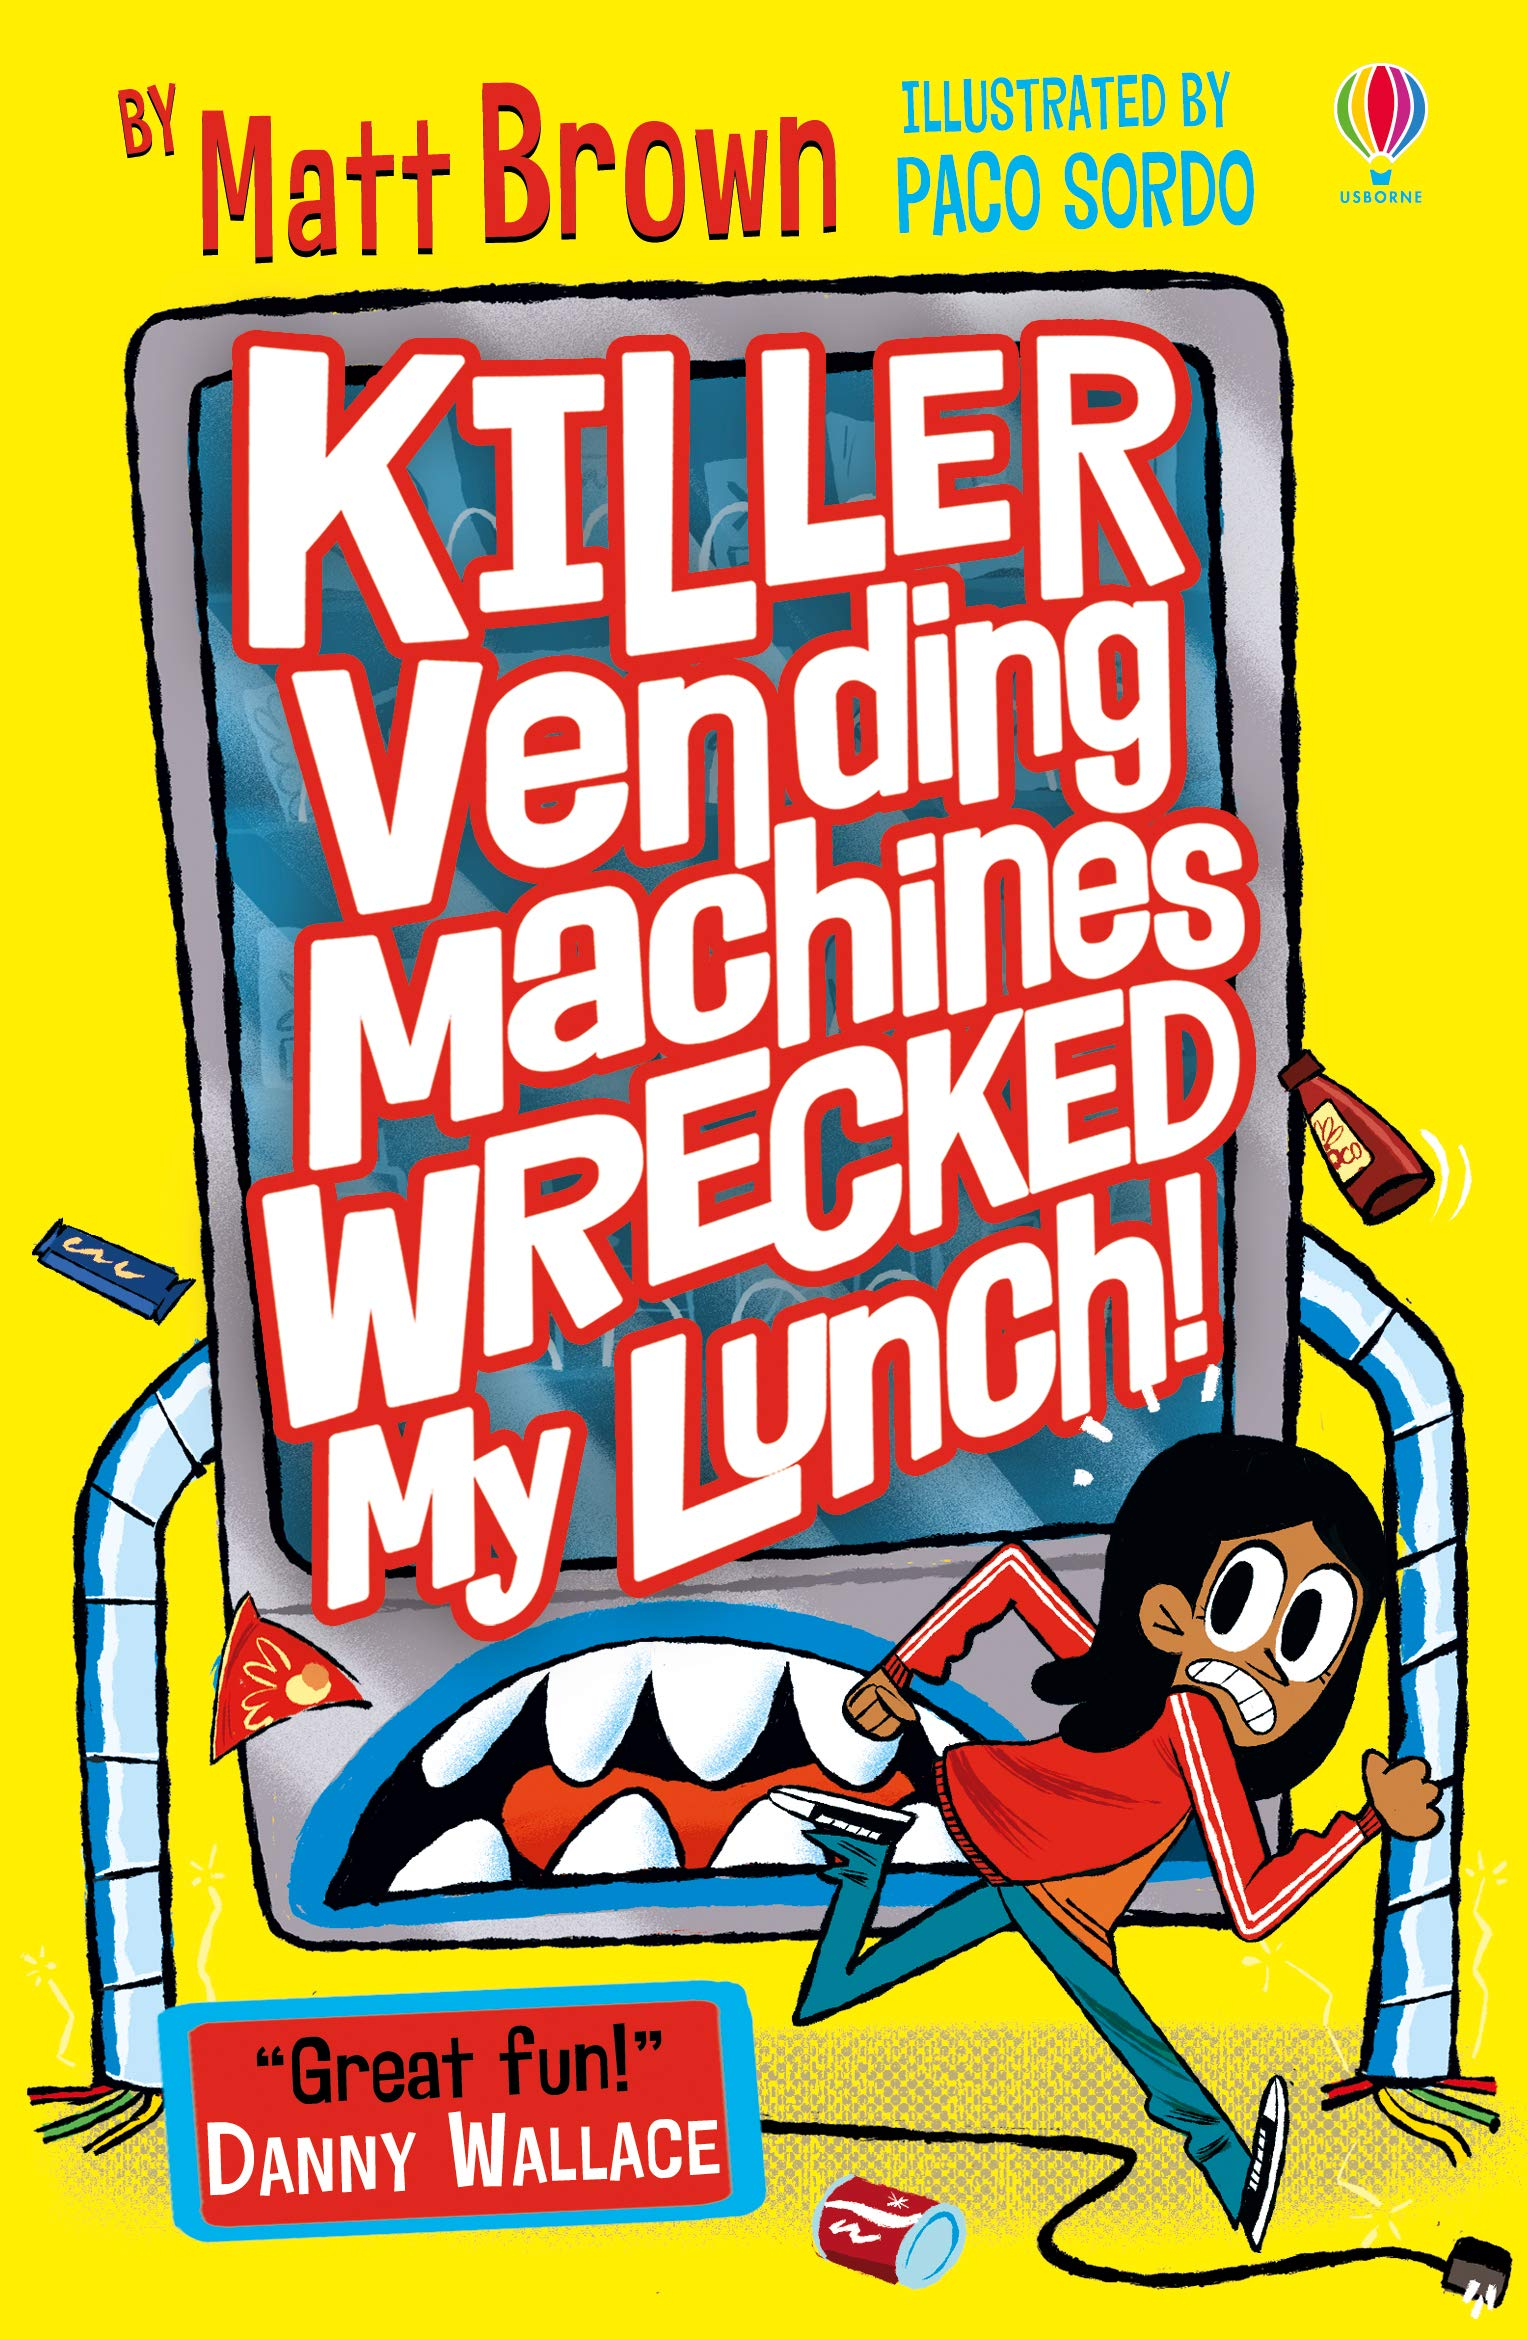 Image result for killer vending machines wrecked my lunch